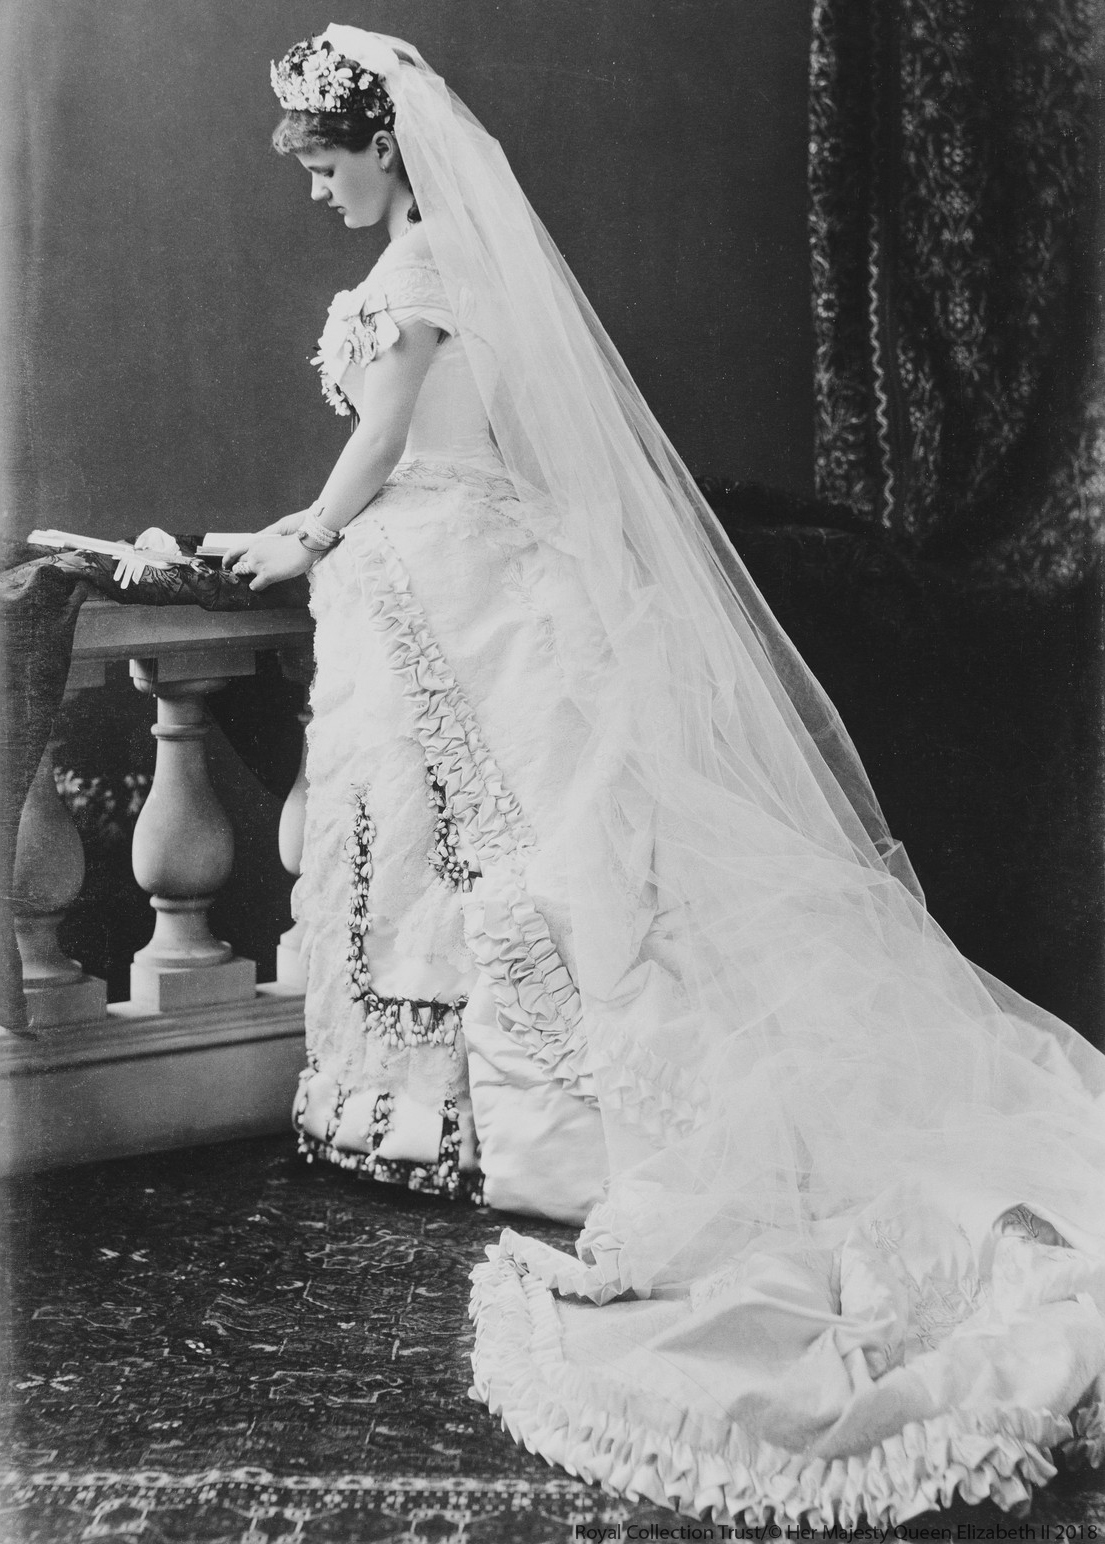 Princess Helena of Waldeck and Pyrmont's Wedding Dress